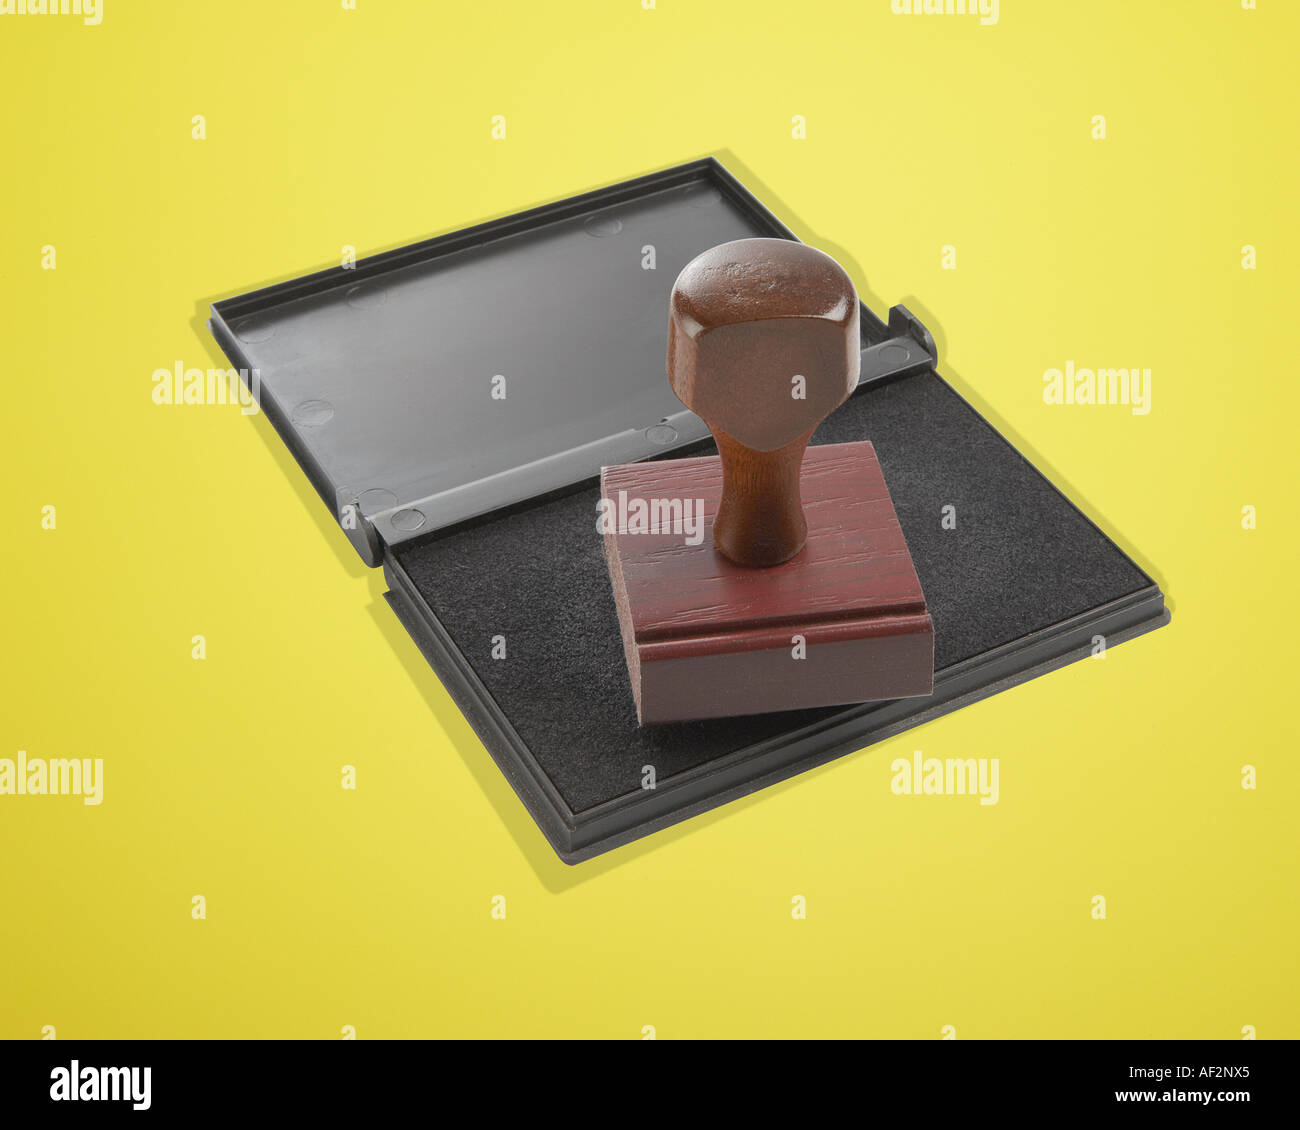 Red Rocket Stock Rubber stamp and pad on color background with clipping path - Stock Image